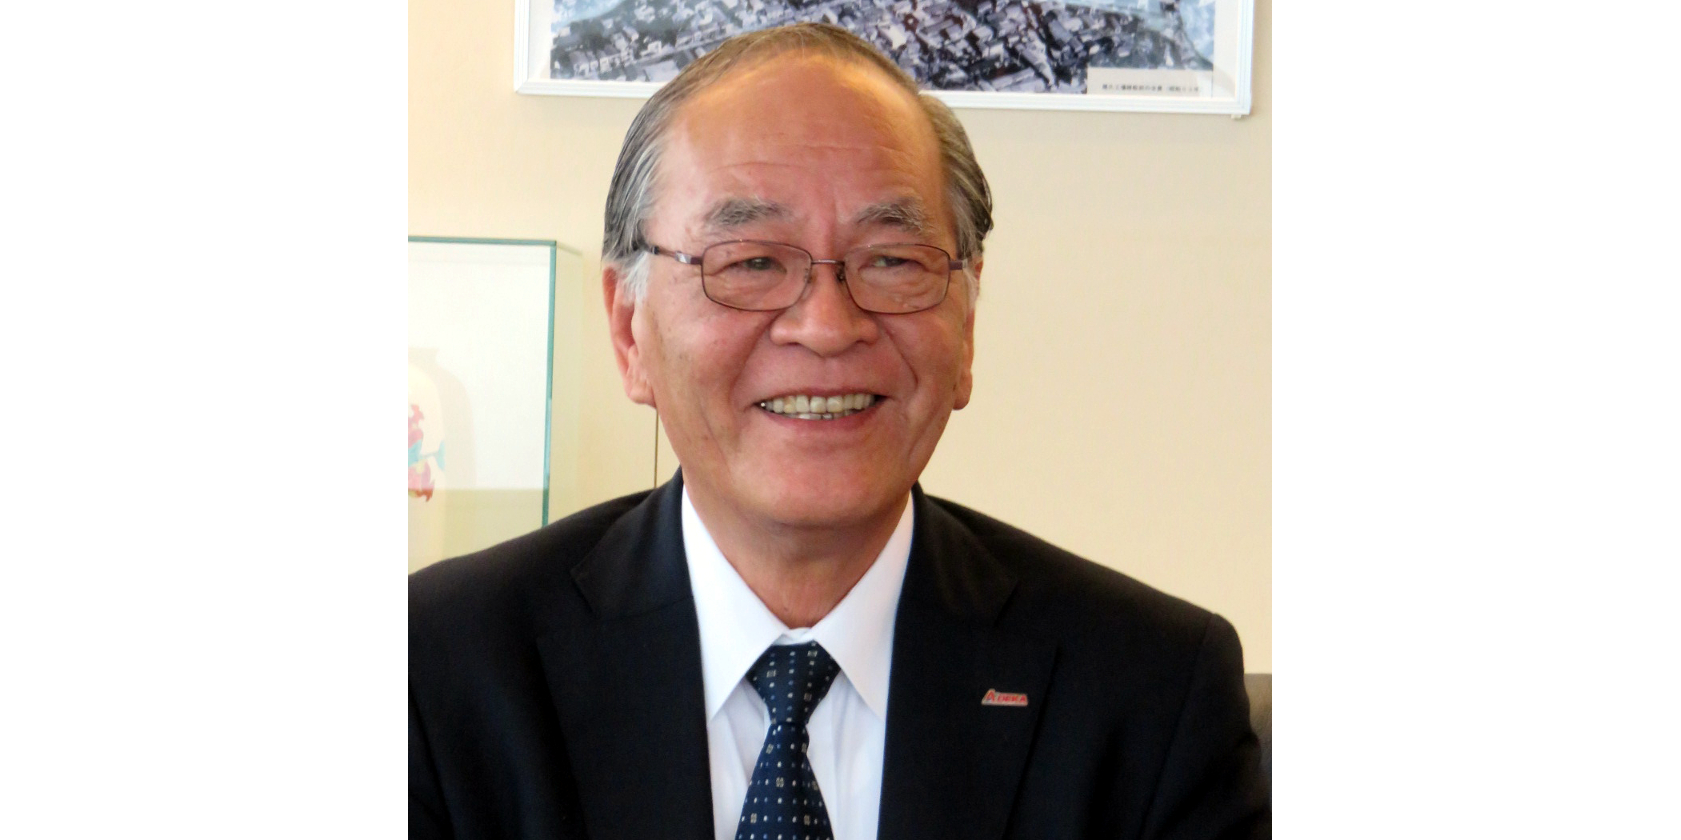 Interview: Adeka CEO Akio Kohri Talks Growth in Chemical Businesses